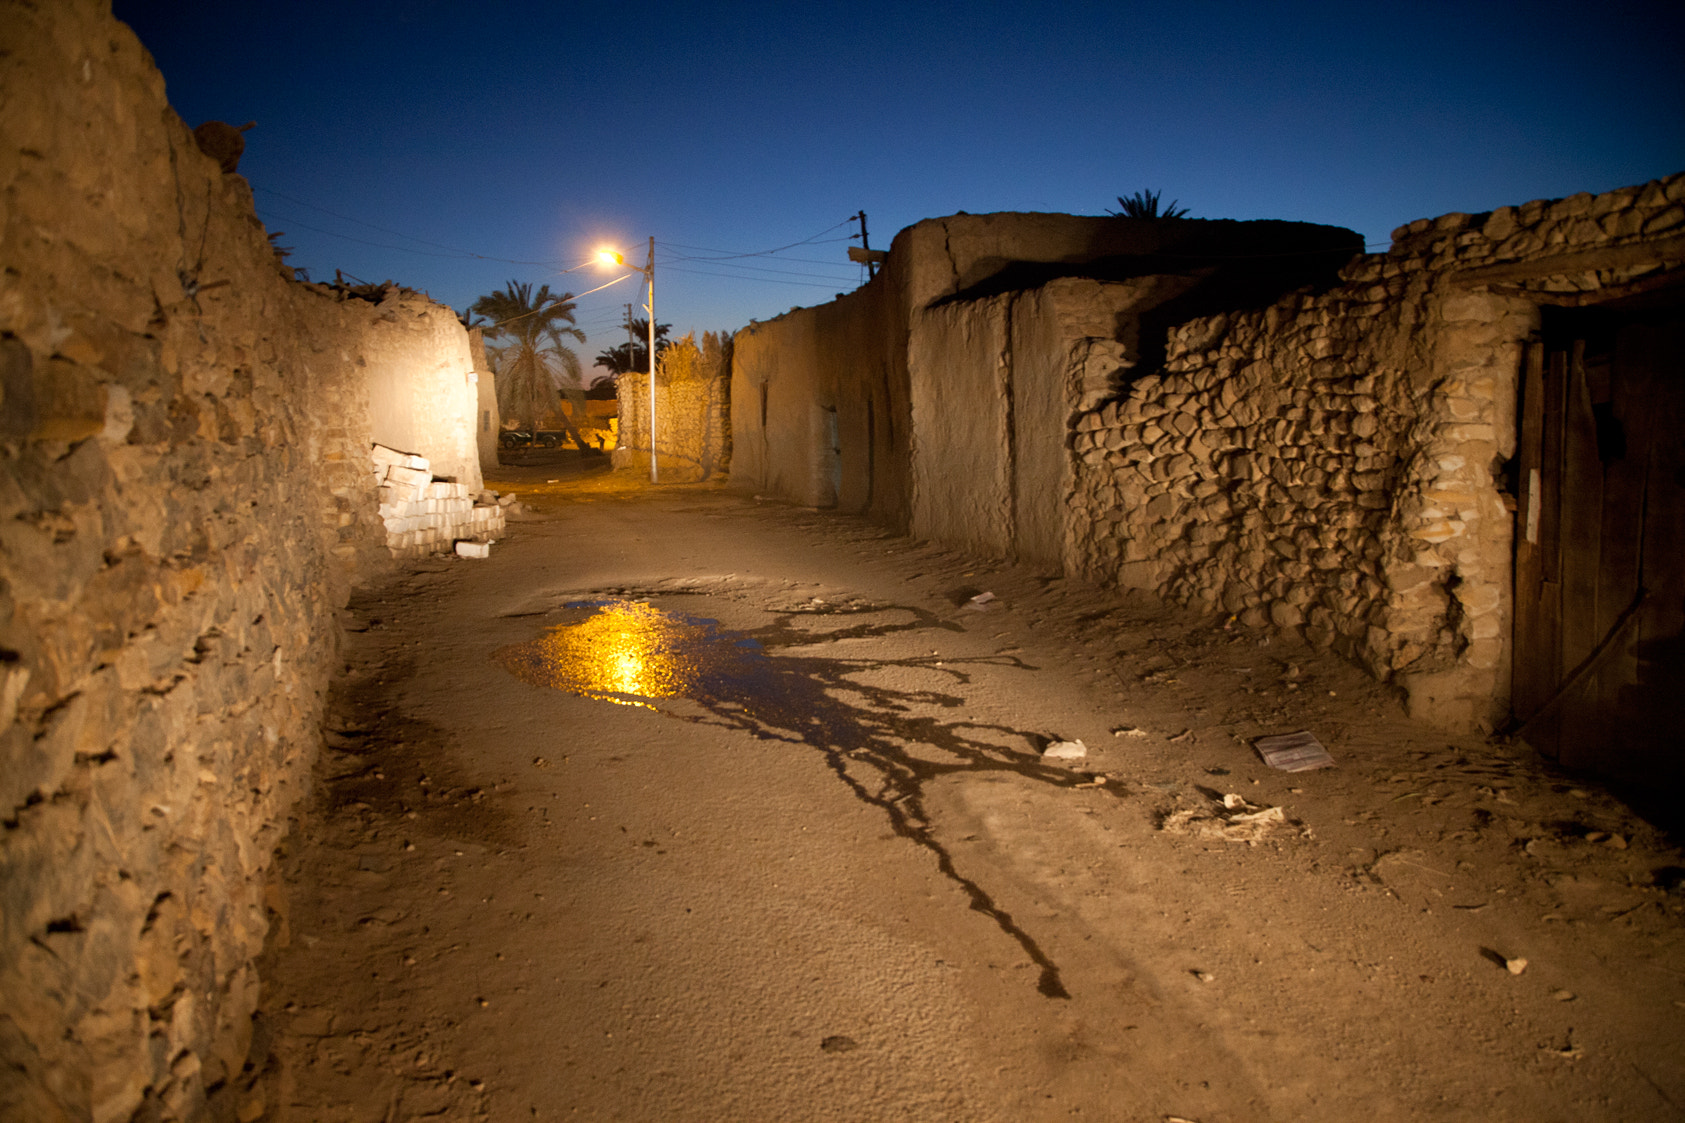 Photograph Streets of the deep Sahara Oasis by Leandro Sanchez on 500px